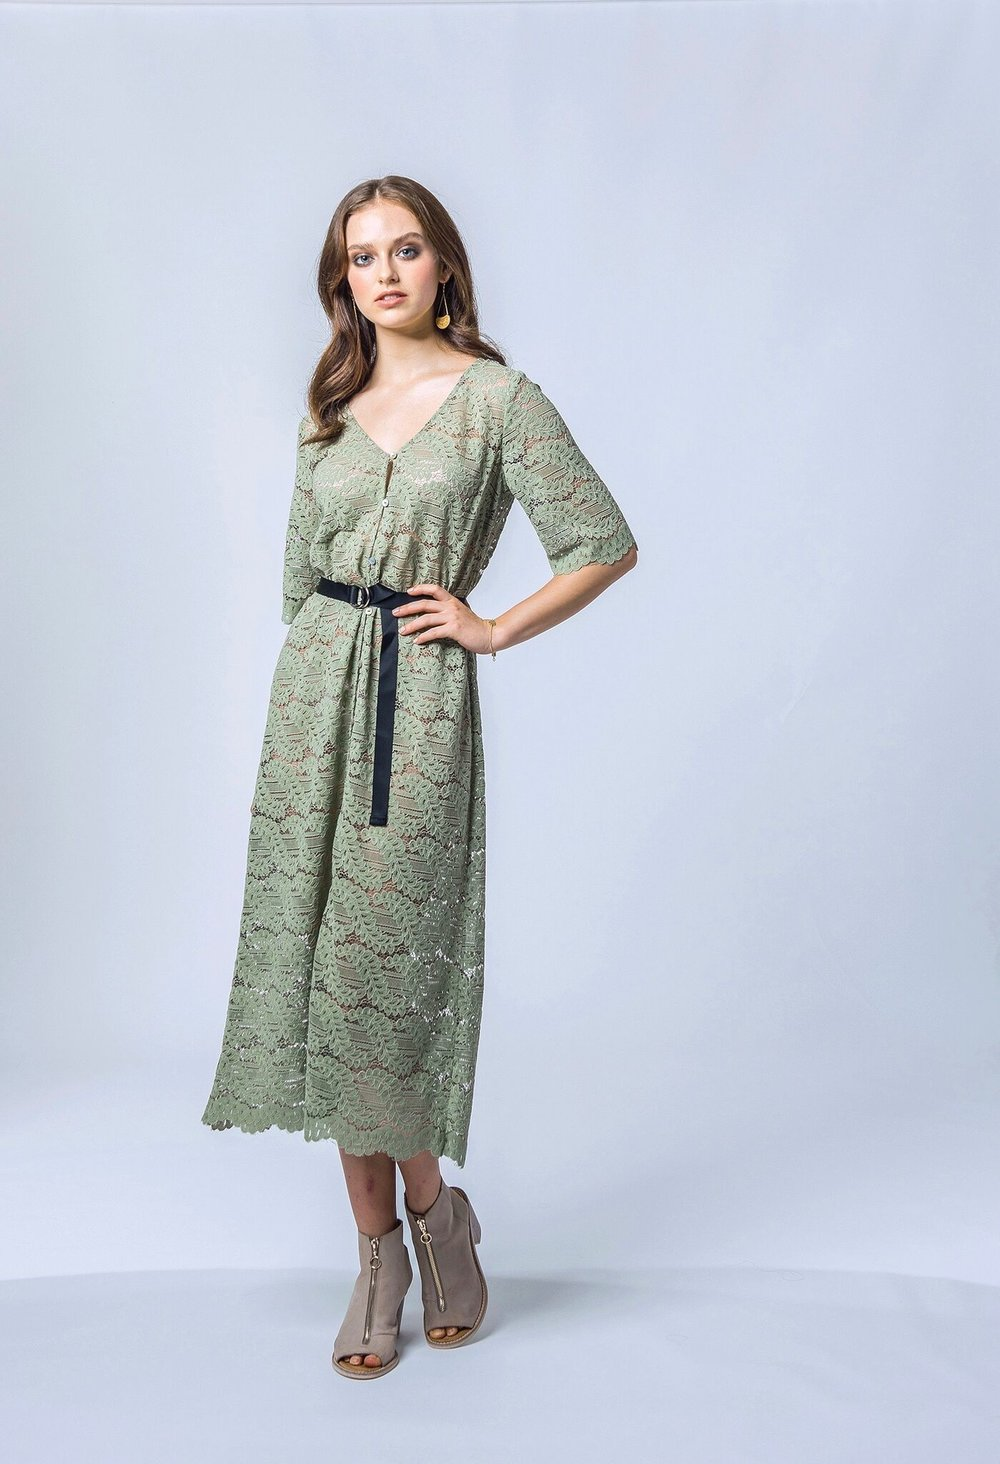 Tuesday Label - Hazel Midi Dress (Sage Lace)